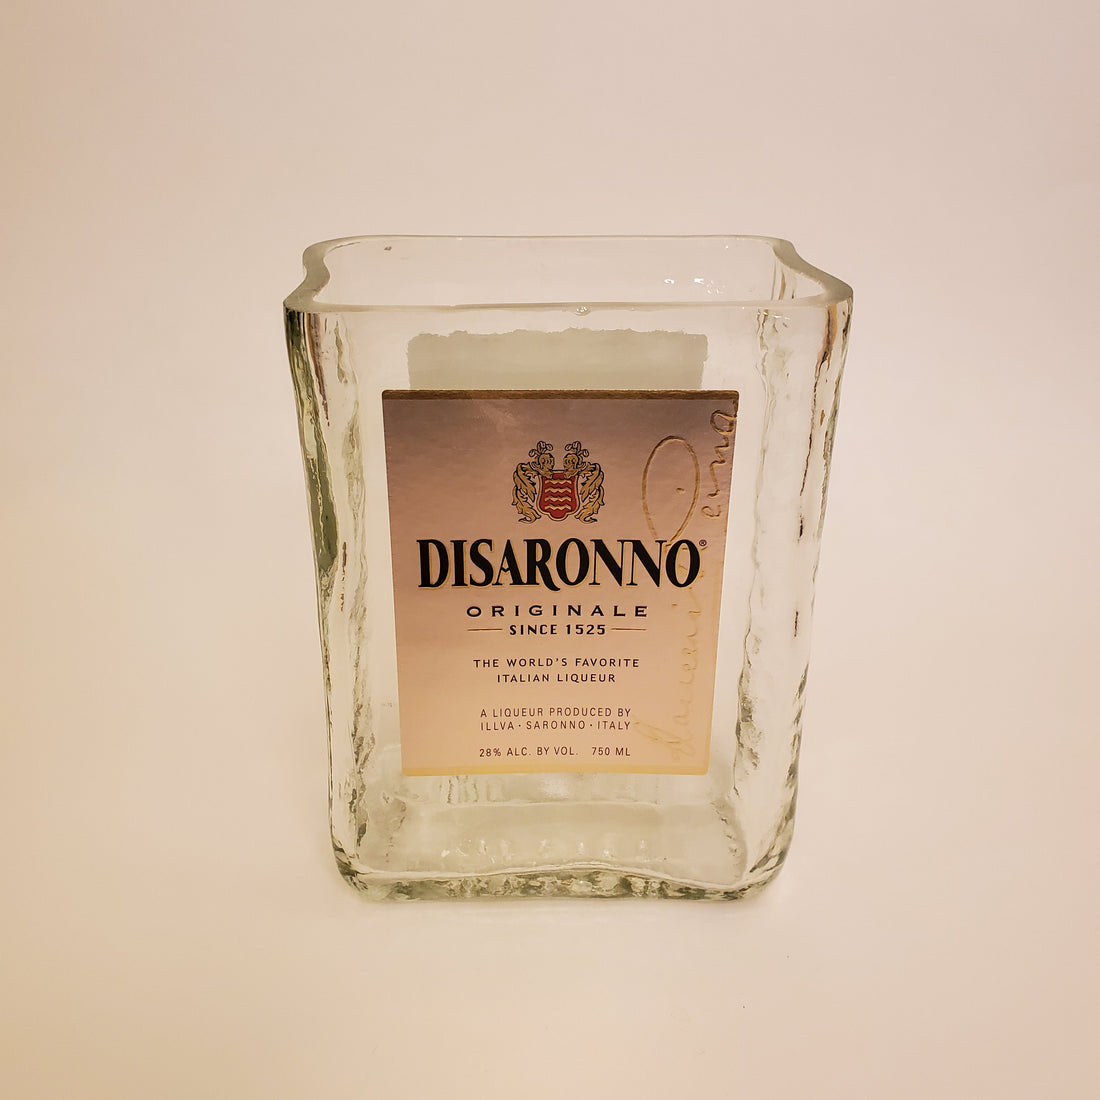 Disaronno 750ML Hand Cut Upcycled Liquor Bottle Candle  - Choose Your Scent